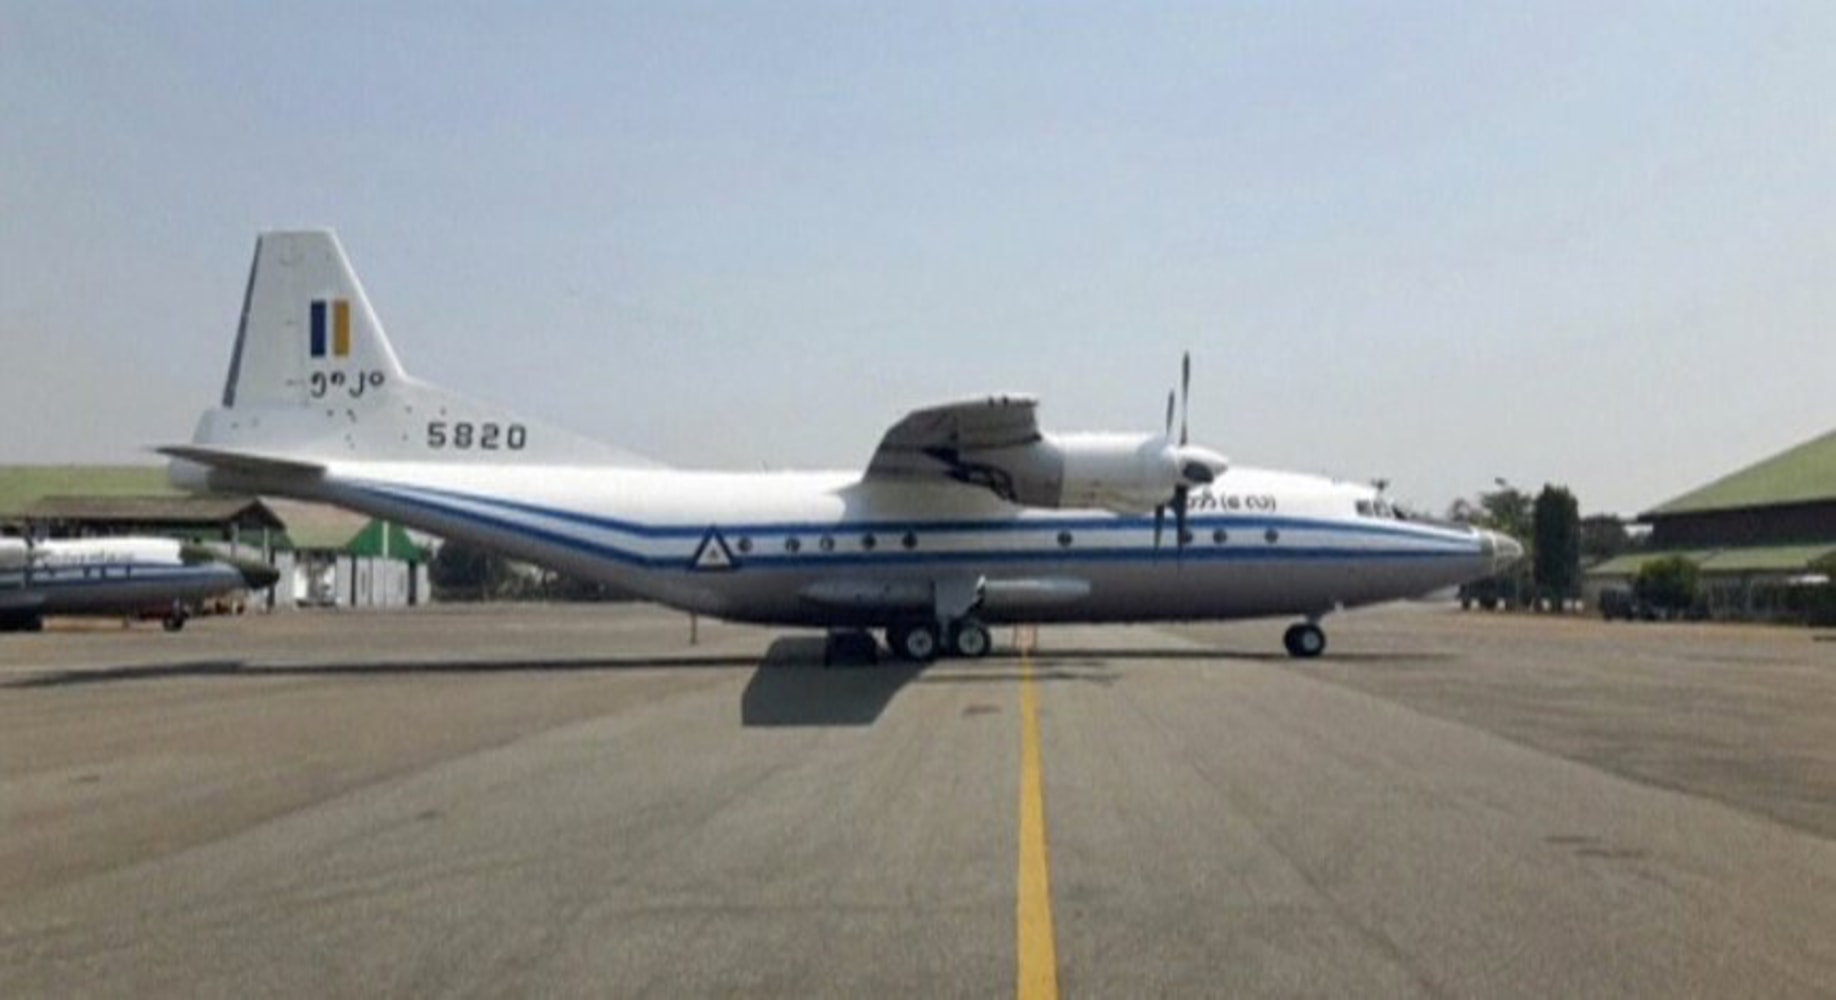 Myanmar military plane missing; search ongoing in Andaman Sea